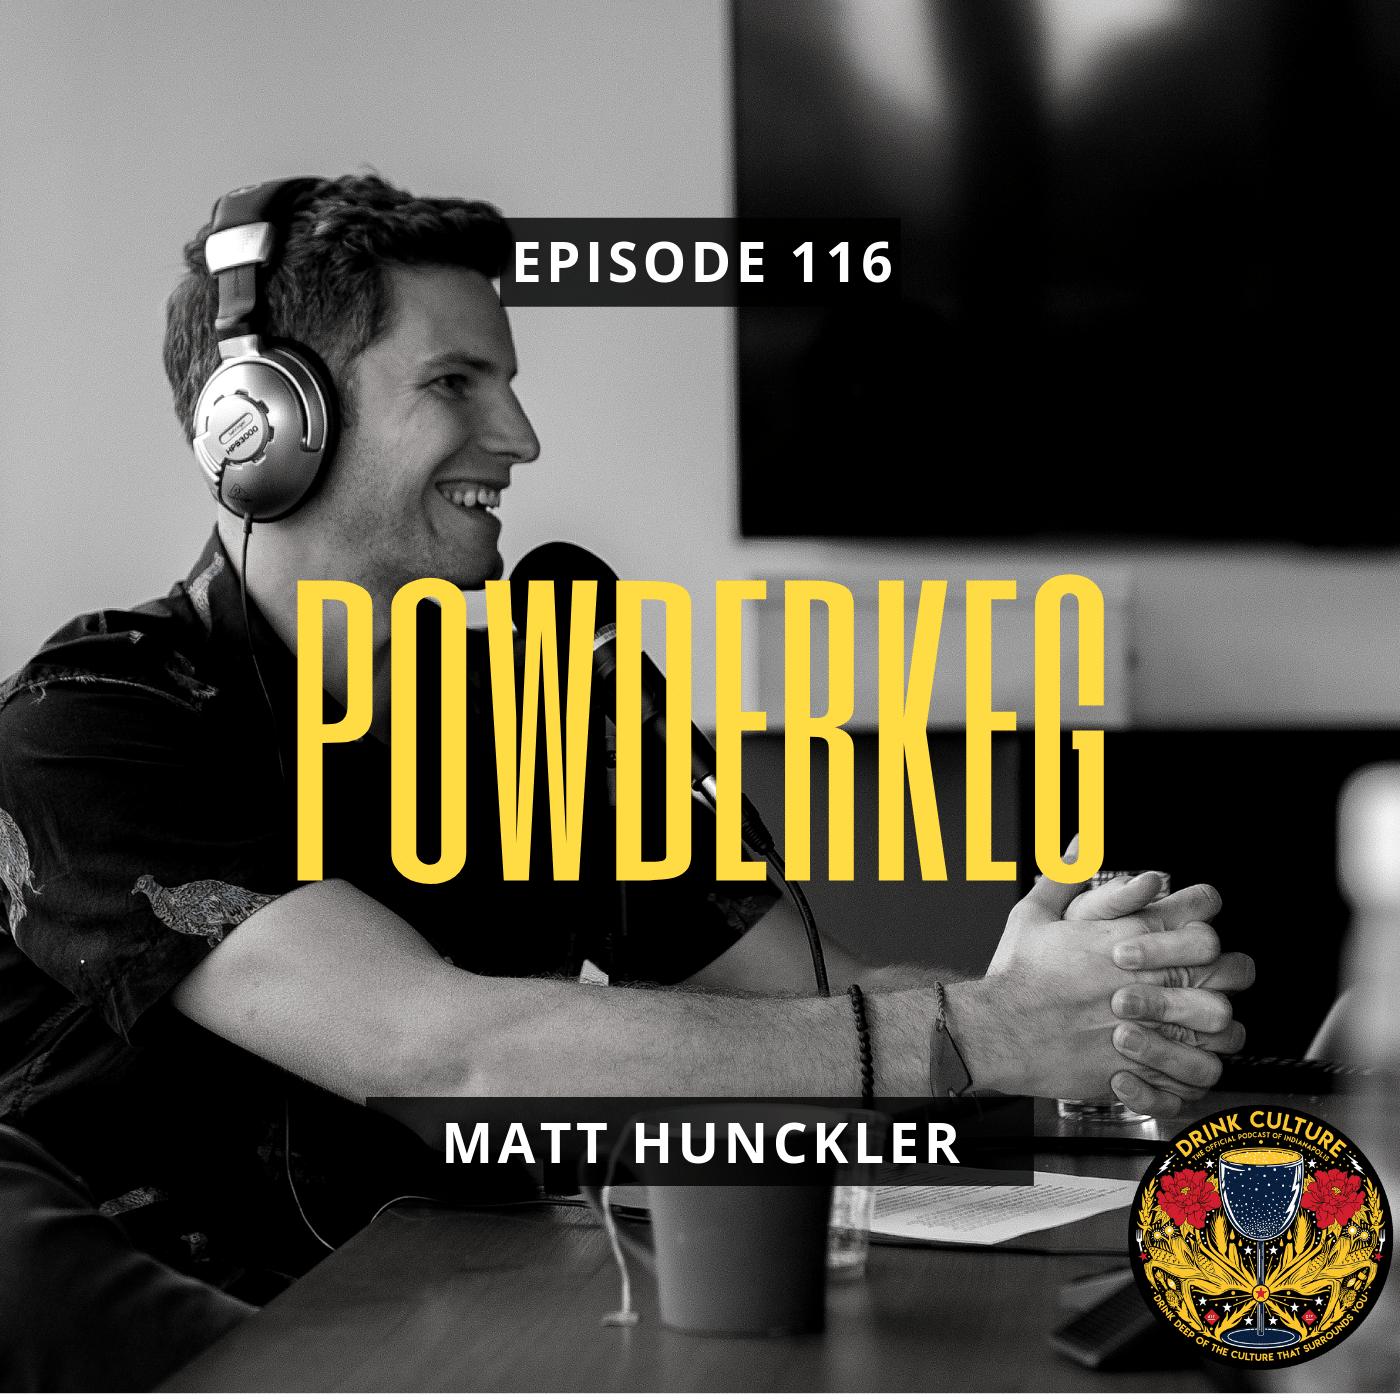 Episode 116: Powderkeg, Matt Hunckler -